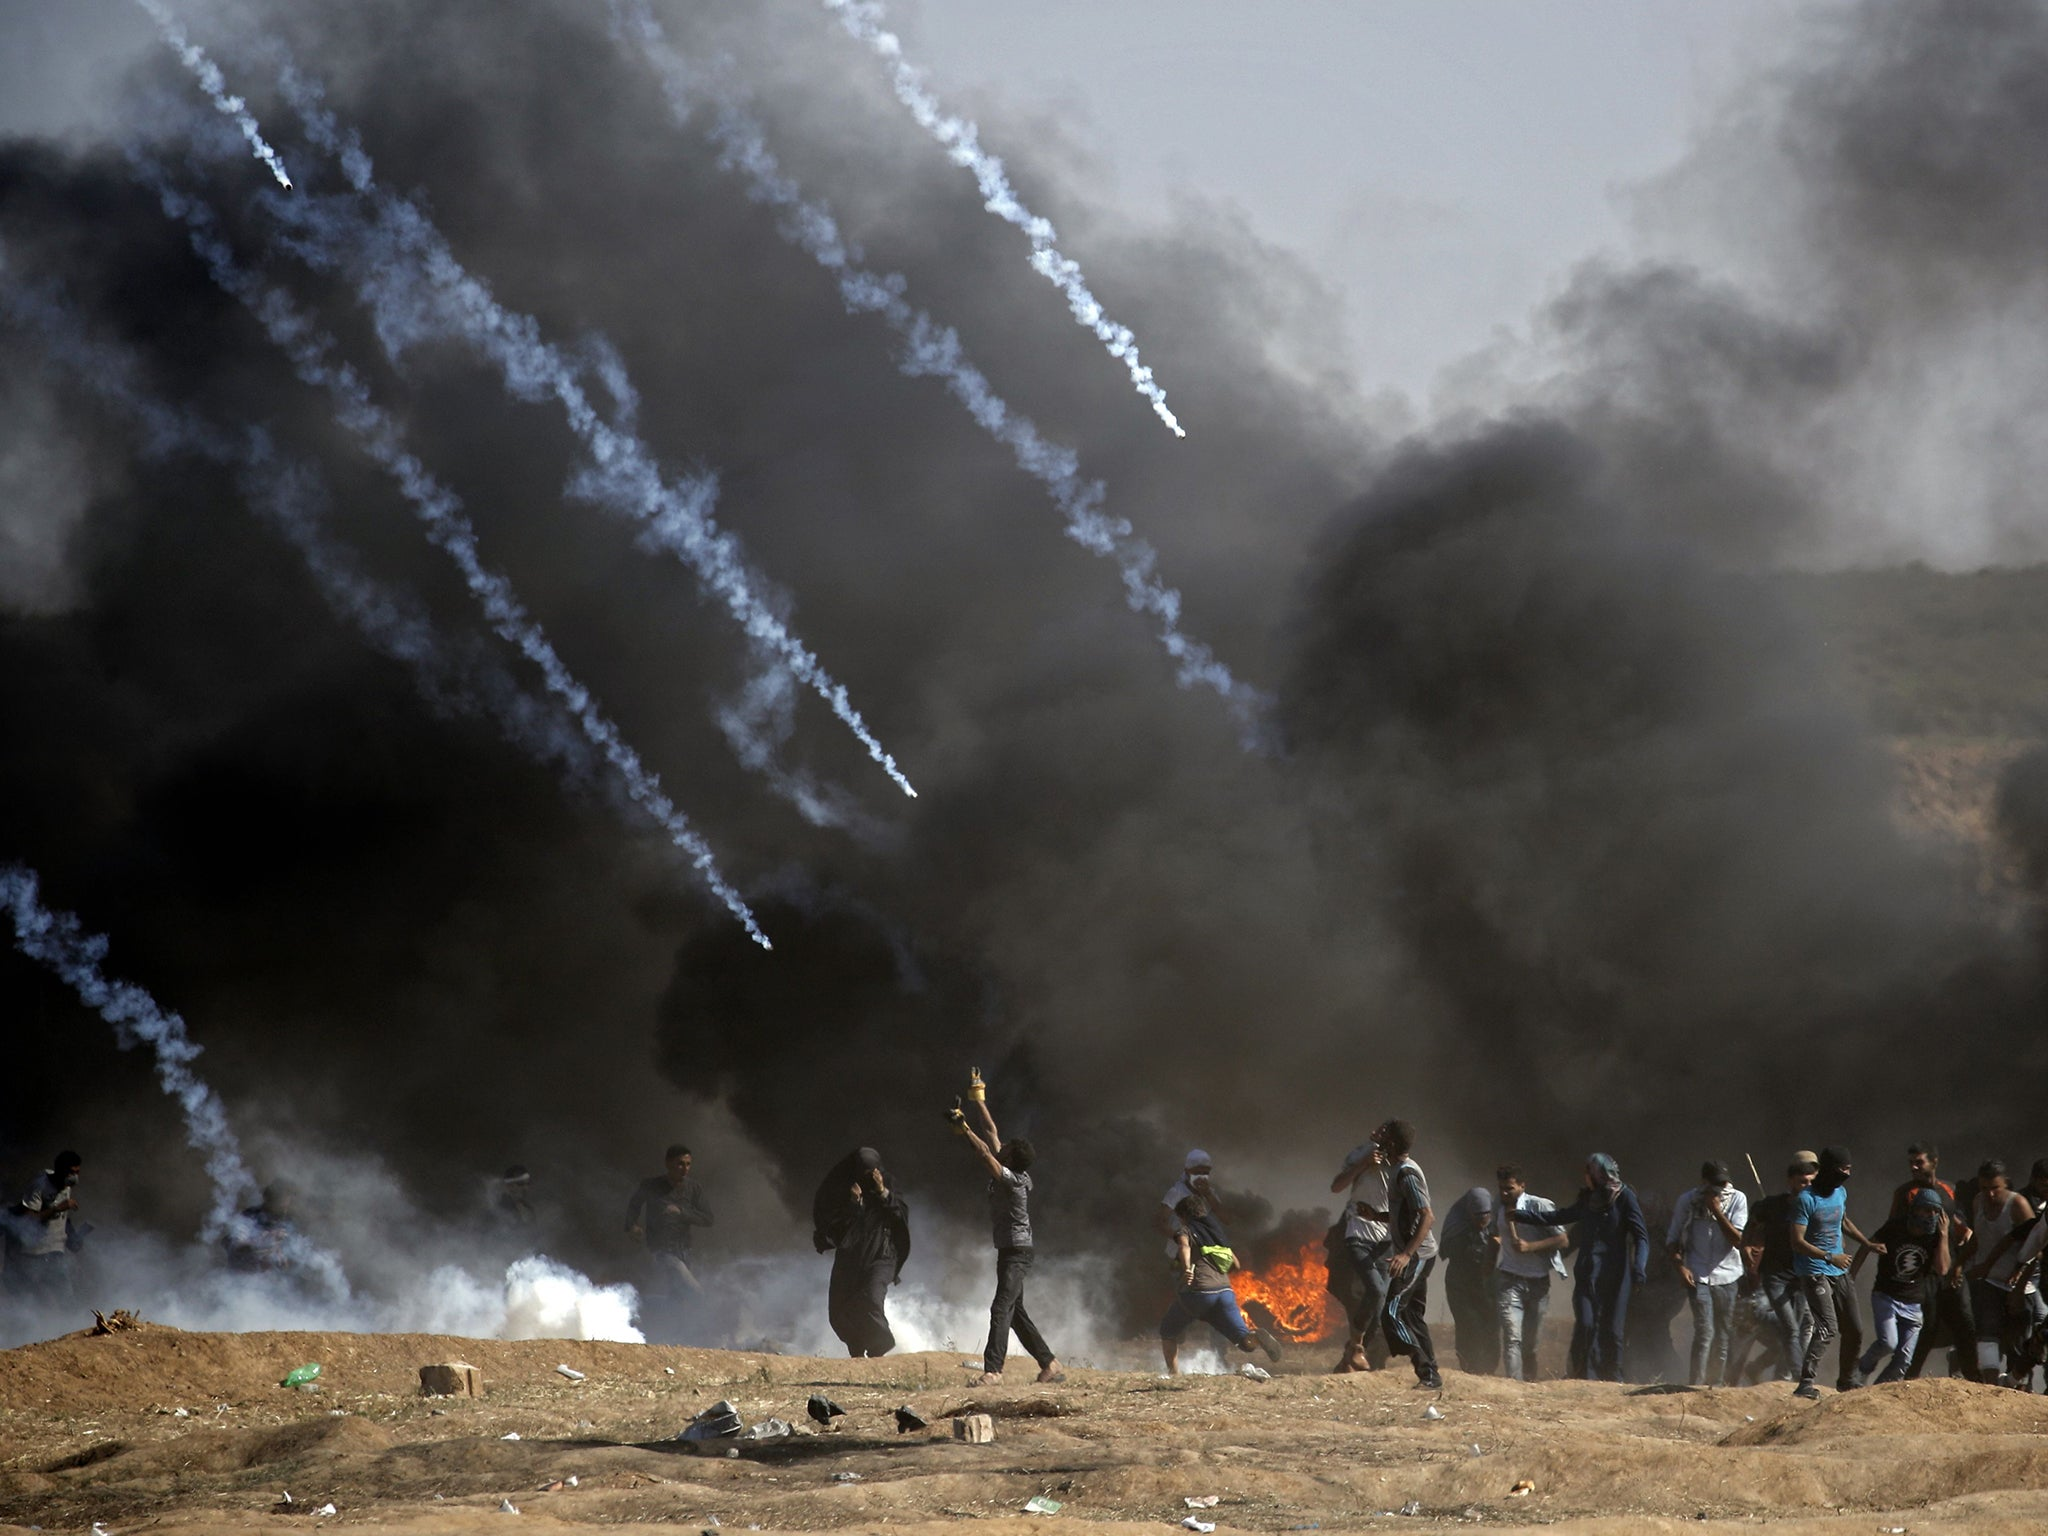 Palestinians ask ICC to consider Israeli war crimes and crimes against humanity